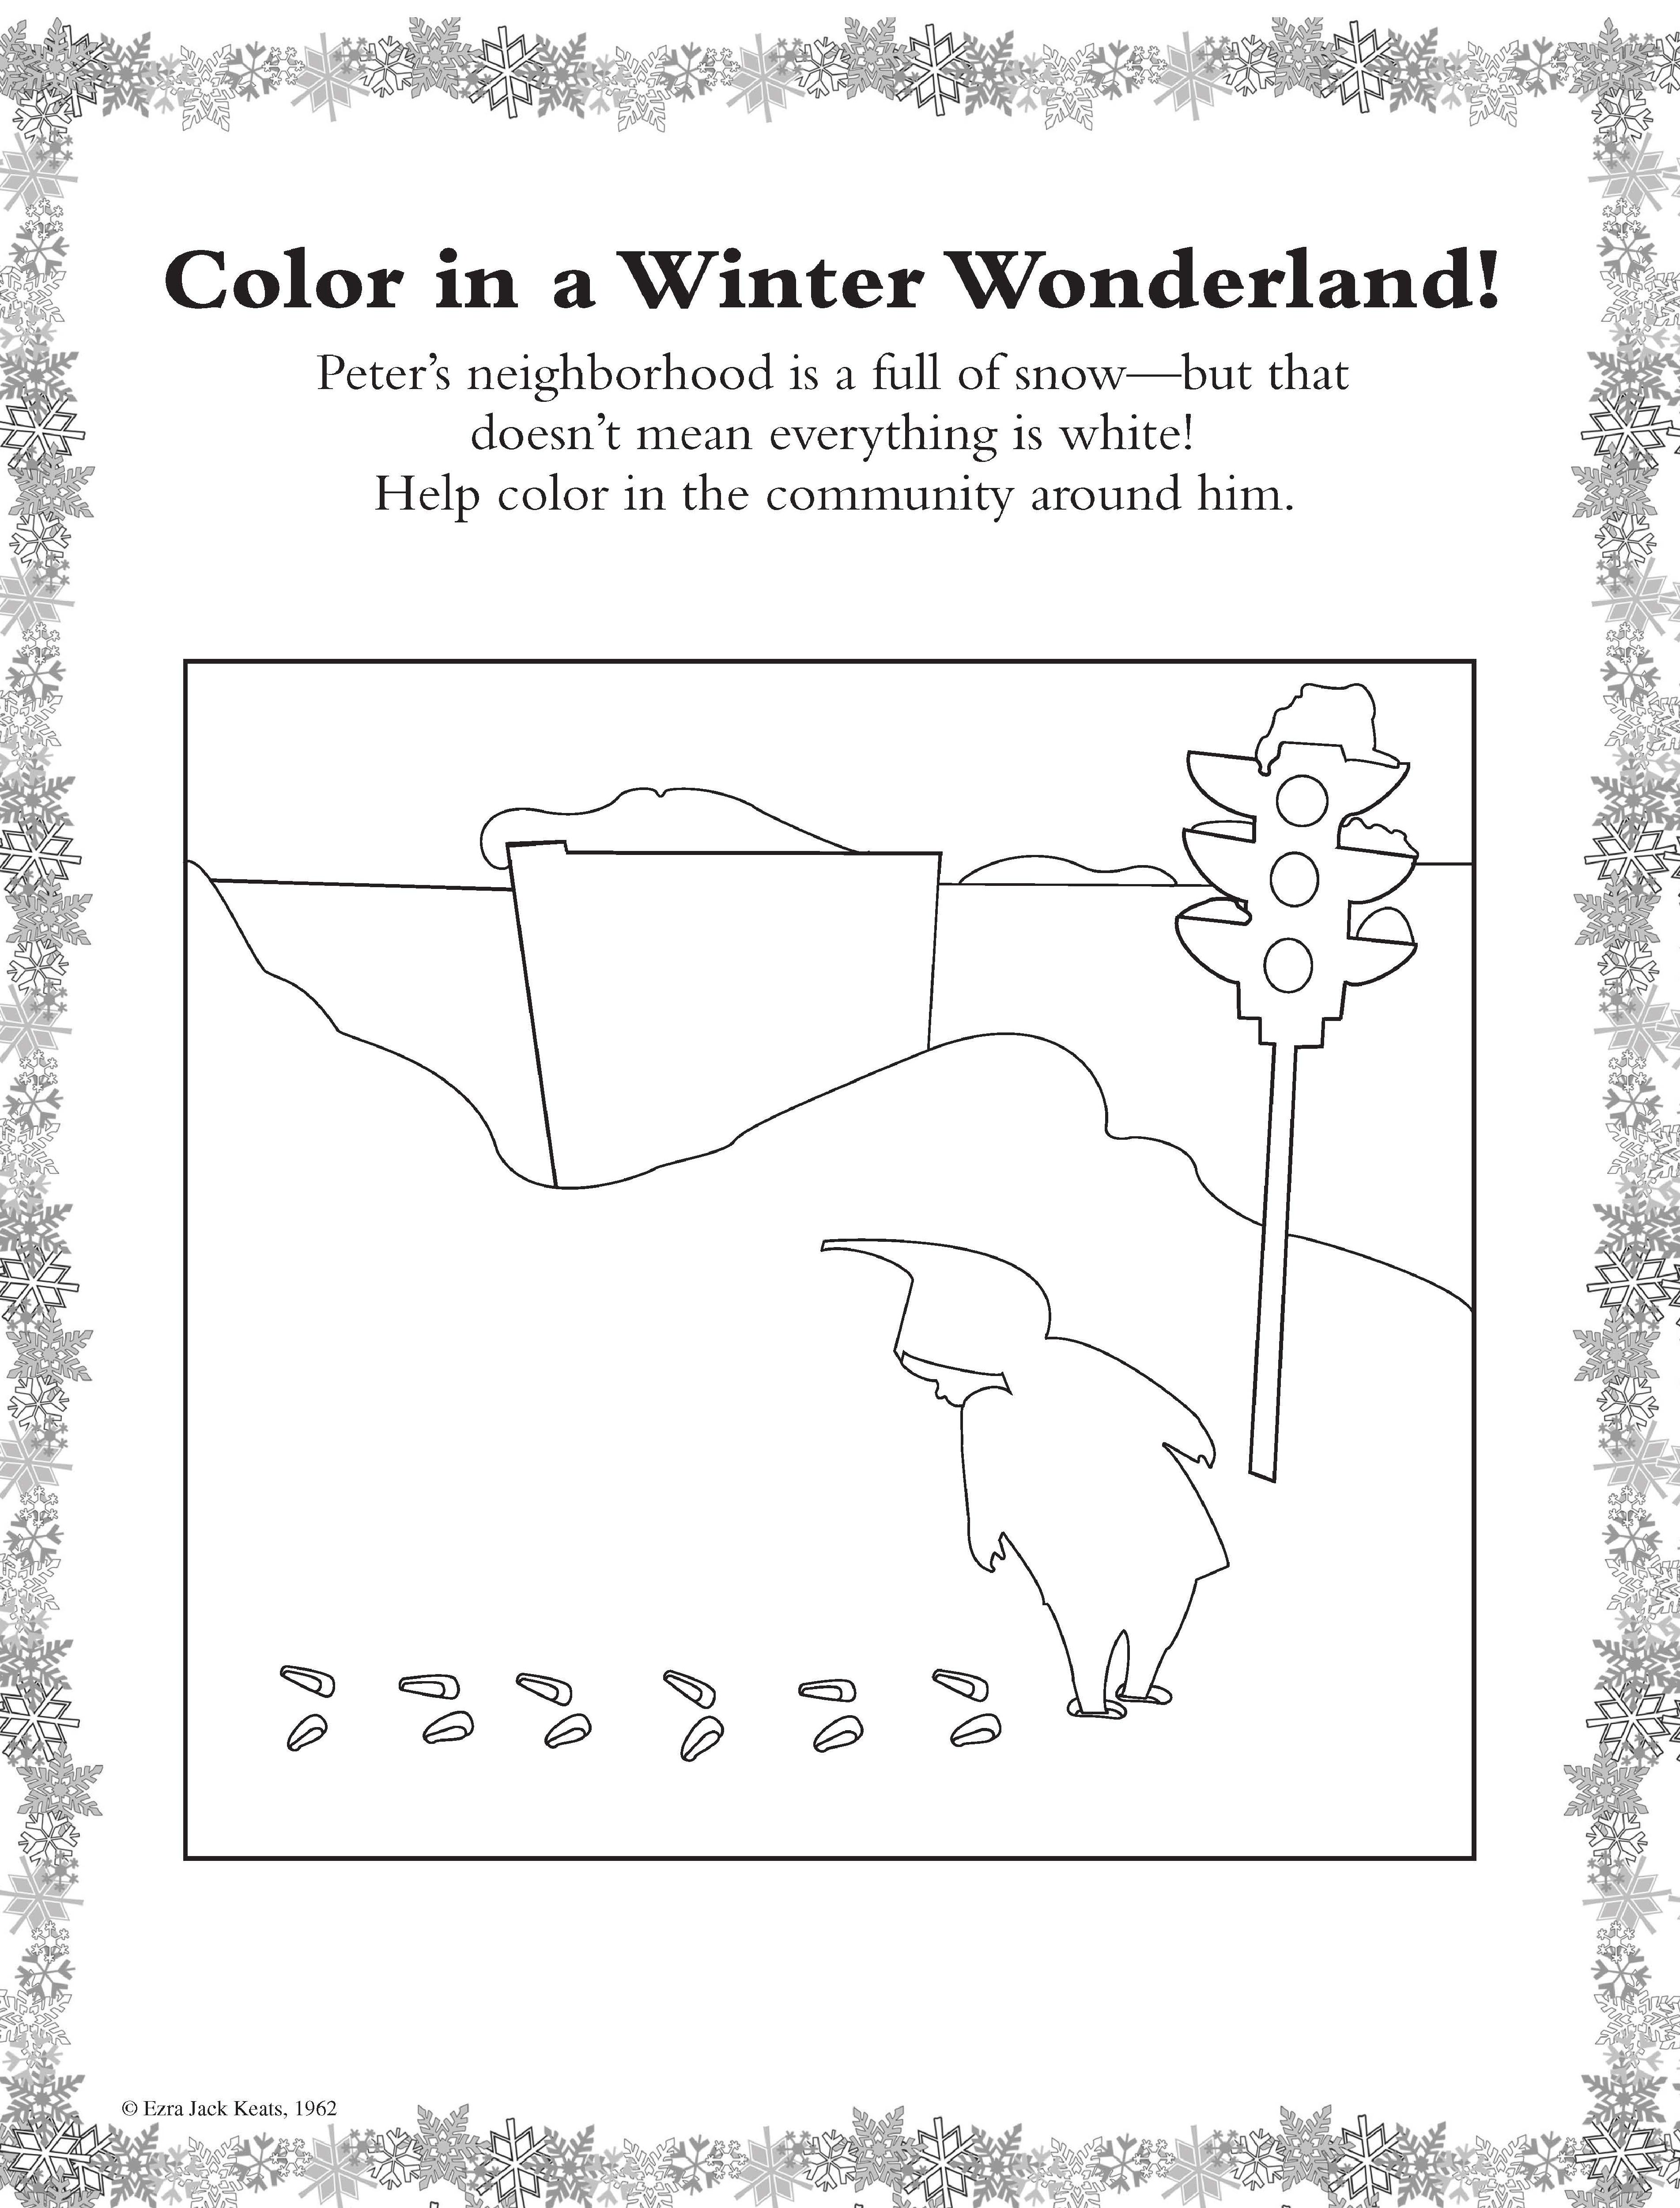 The Snowy Day Character Activity Sheets